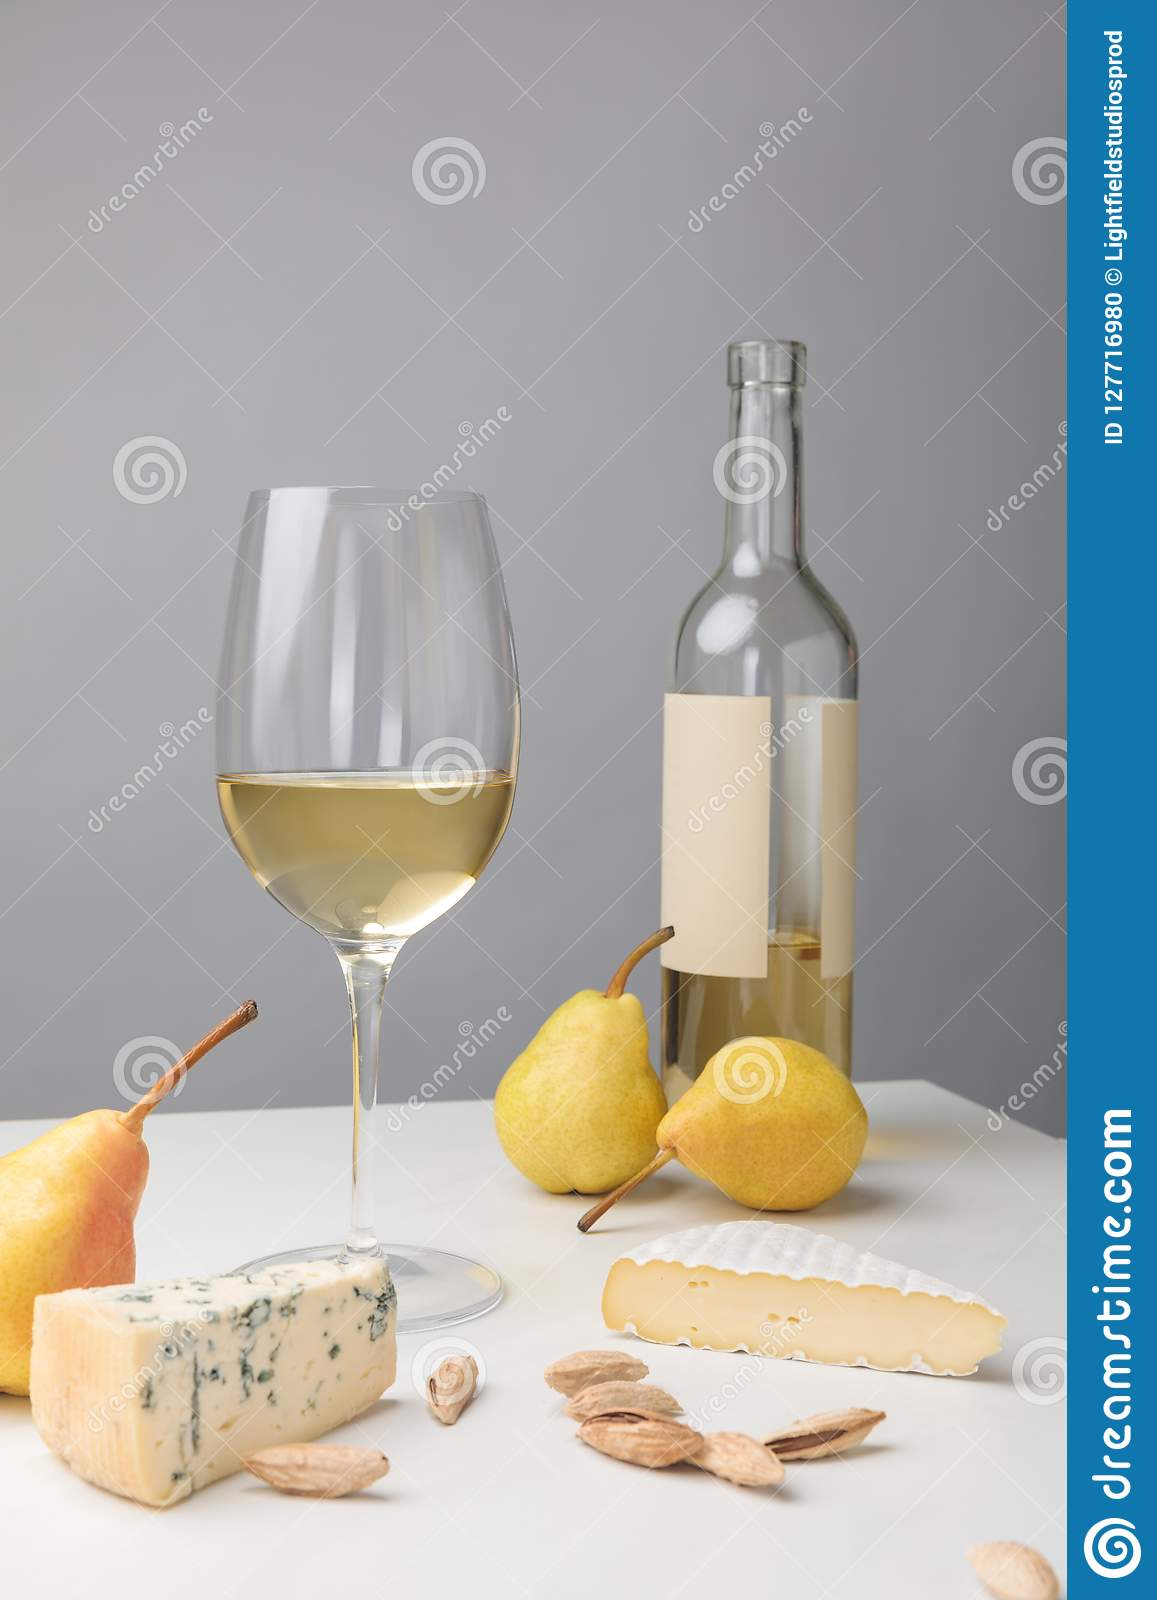 Brie and dorblu cheese with pears, almond, wine glass and bottle on gray